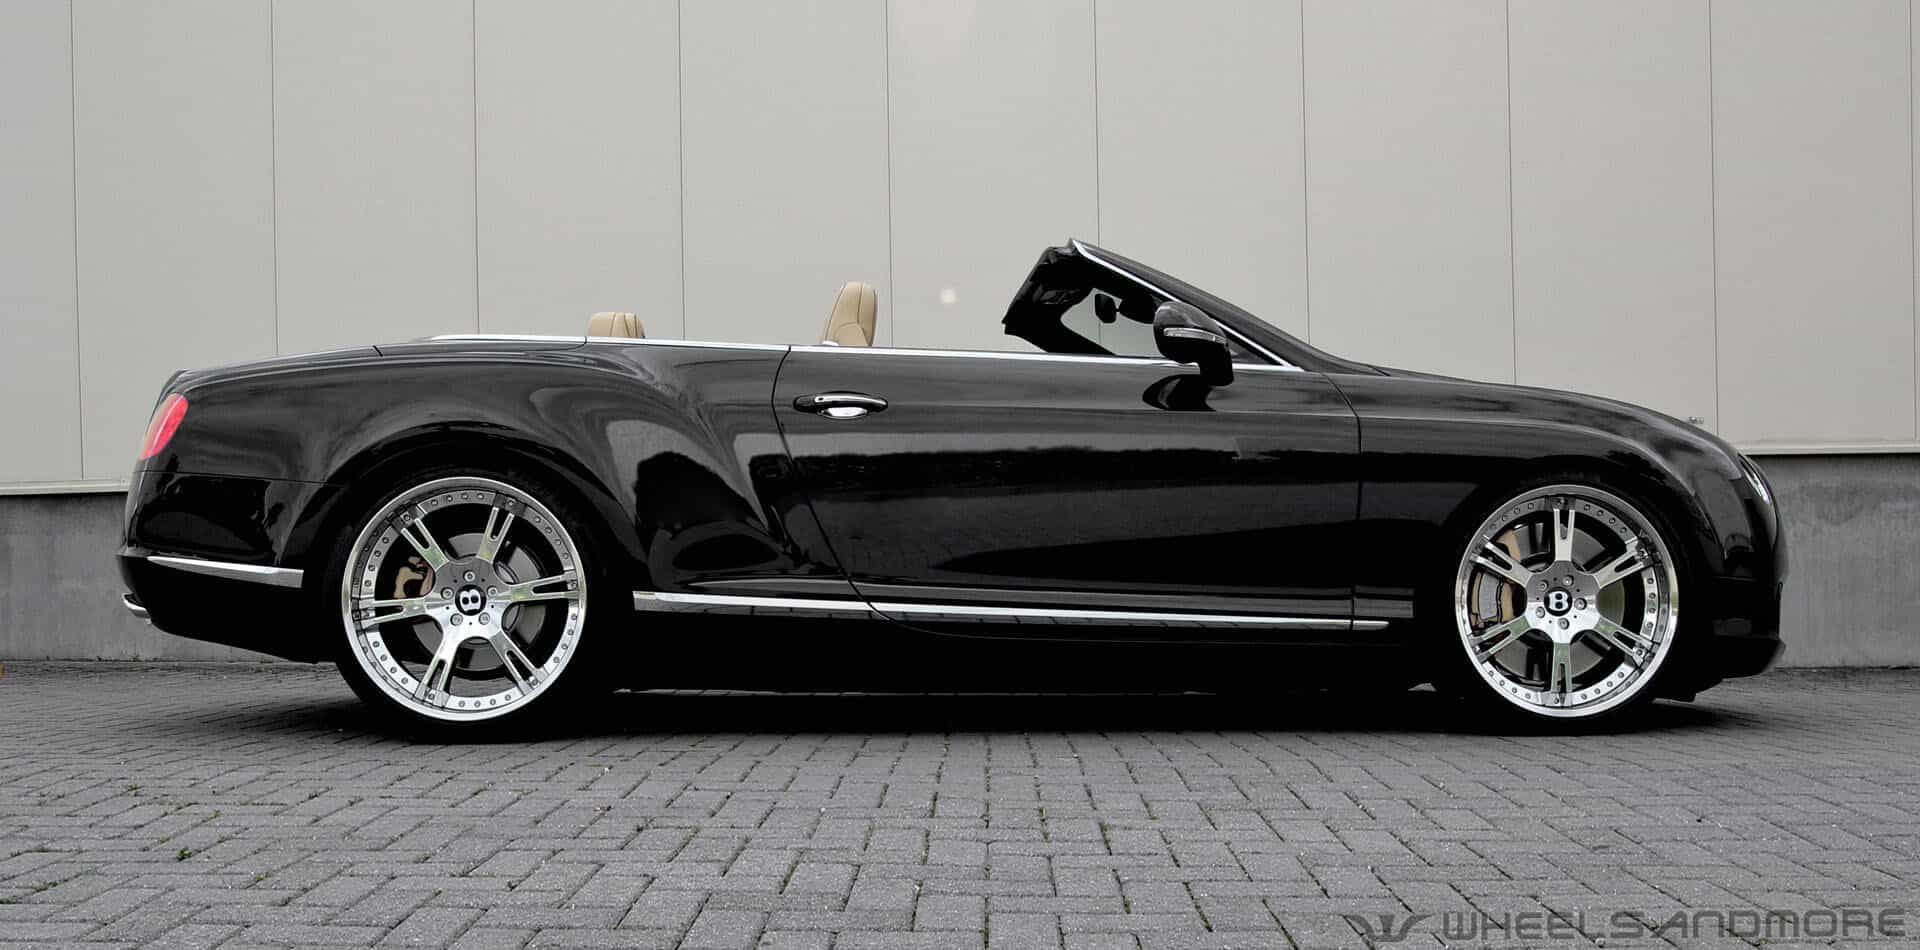 Bentley Continental tuning with wheels and exhaust